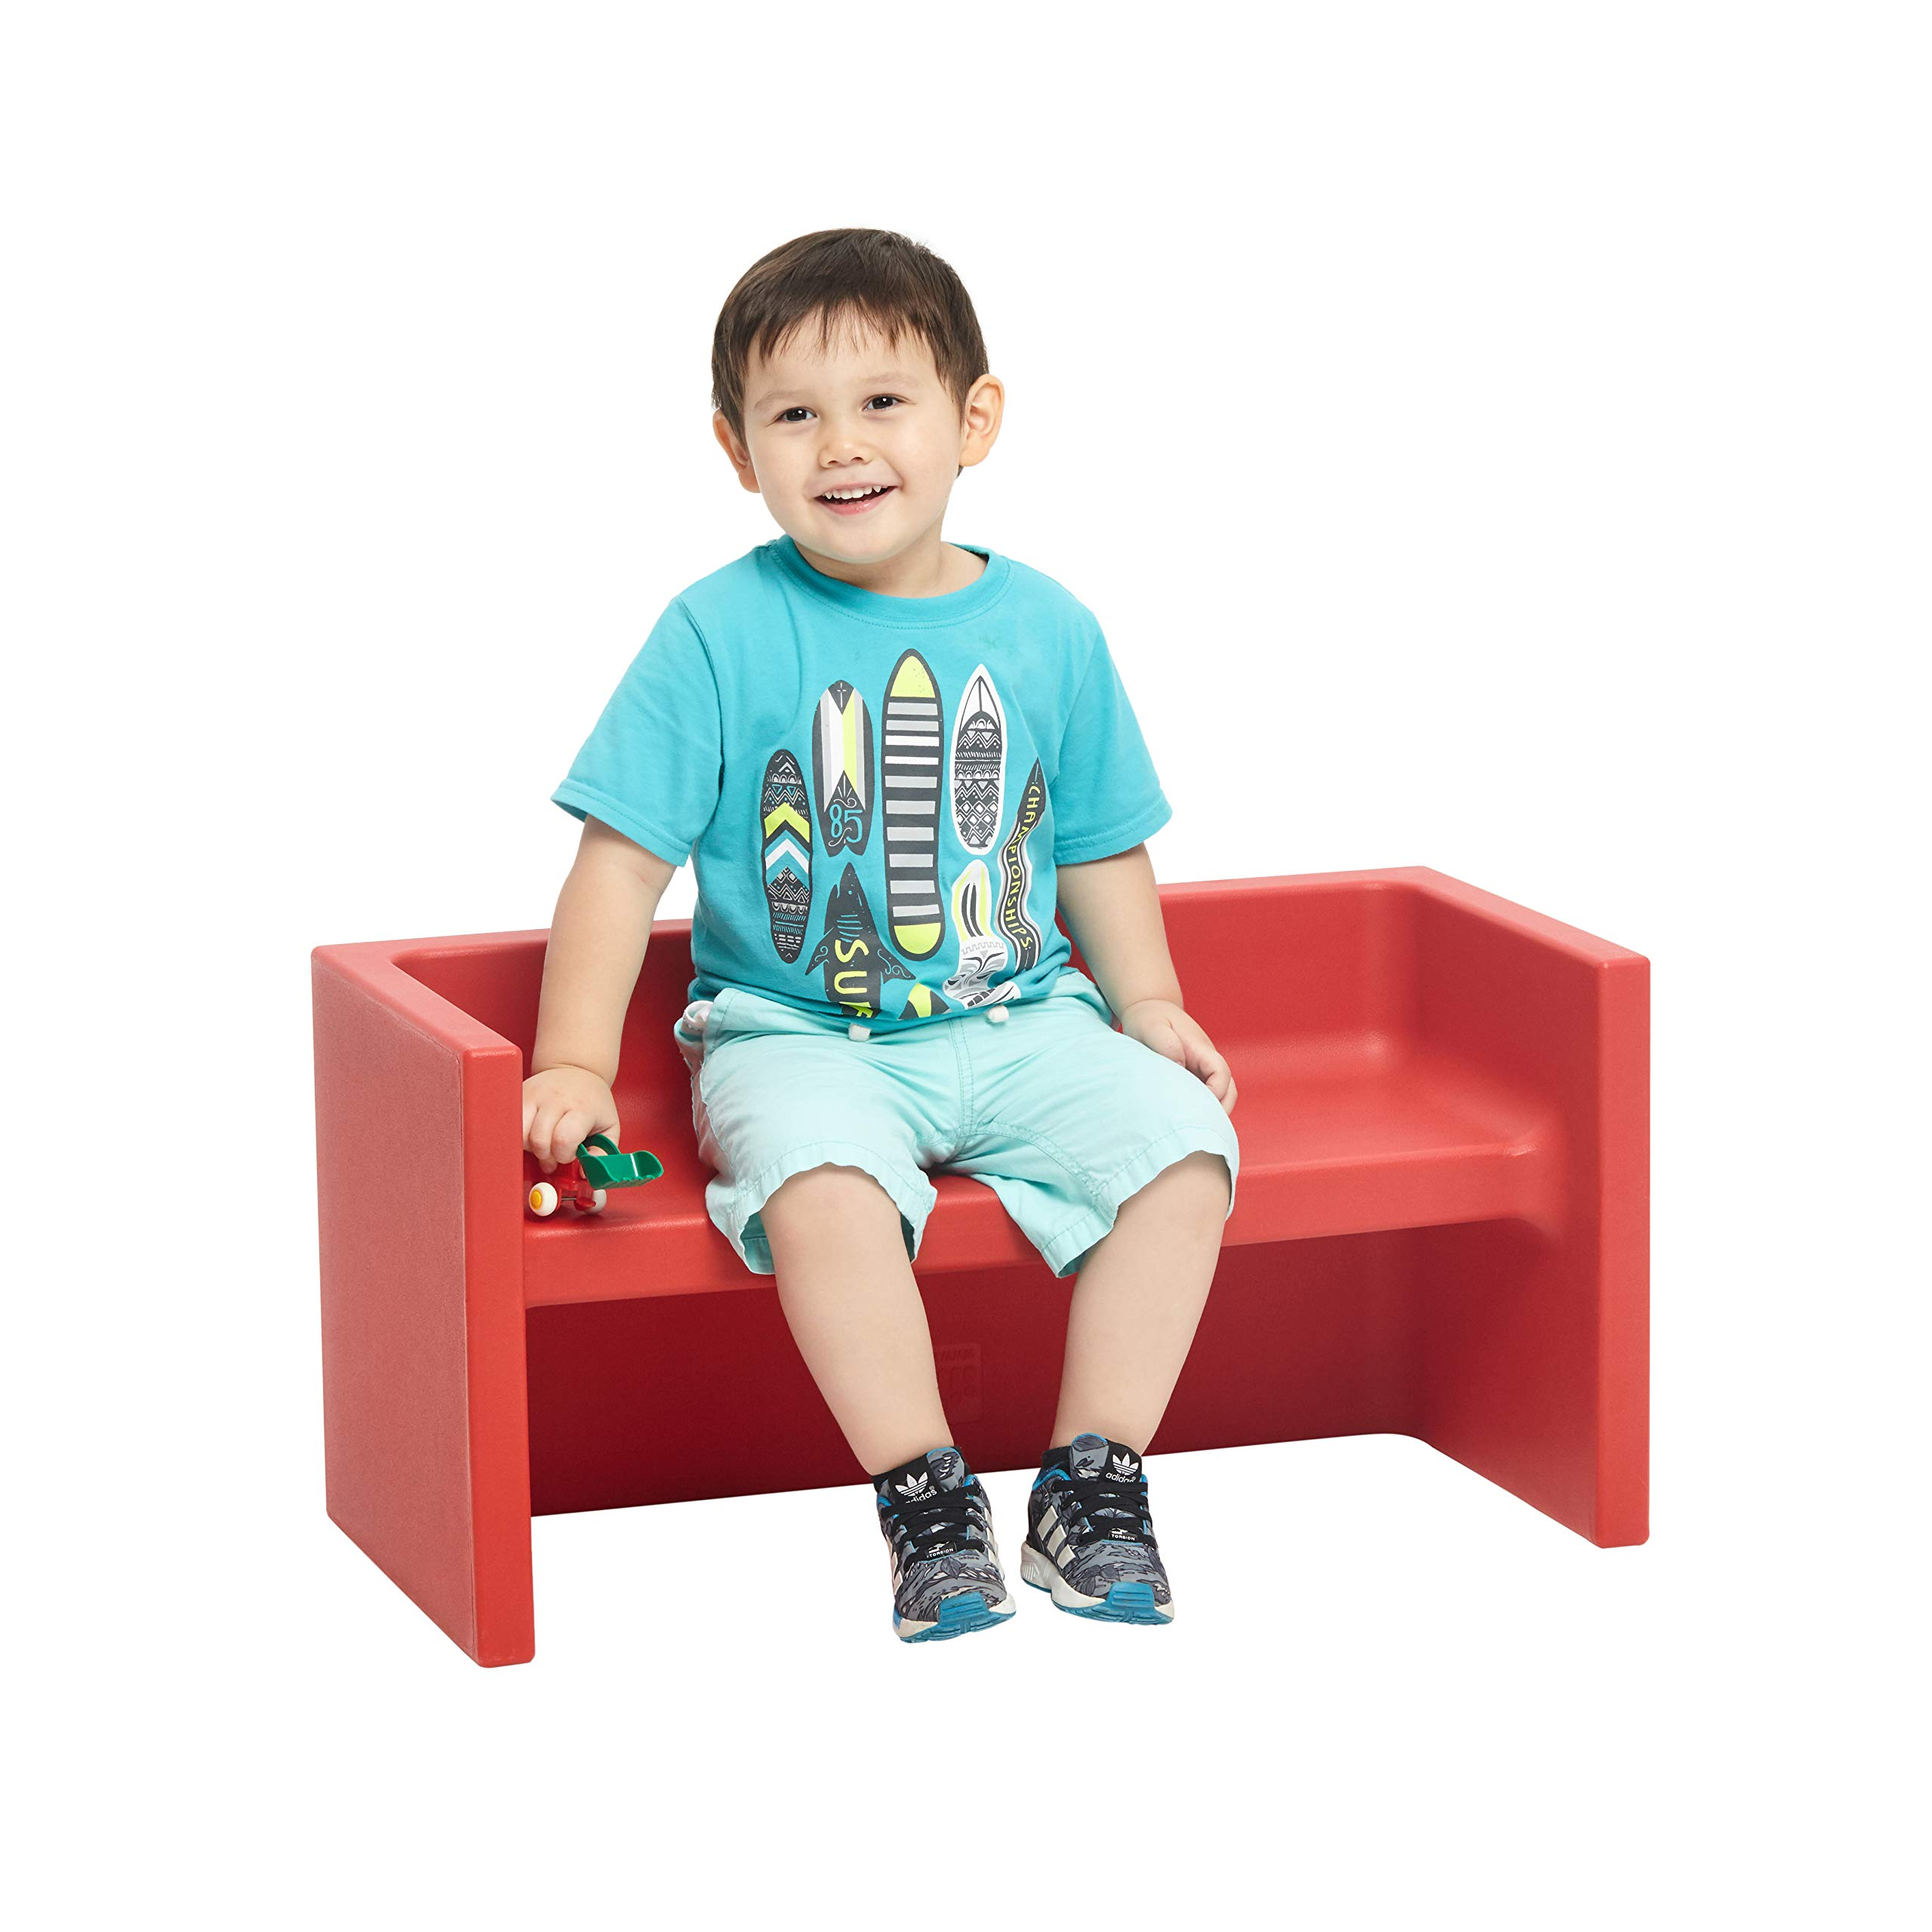 ECR4Kids Tri-Me 3-in-1 Cube Bench, Portable Indoor/Outdoor Play Seat or Table for Kids and Toddlers, Red by ECR4Kids